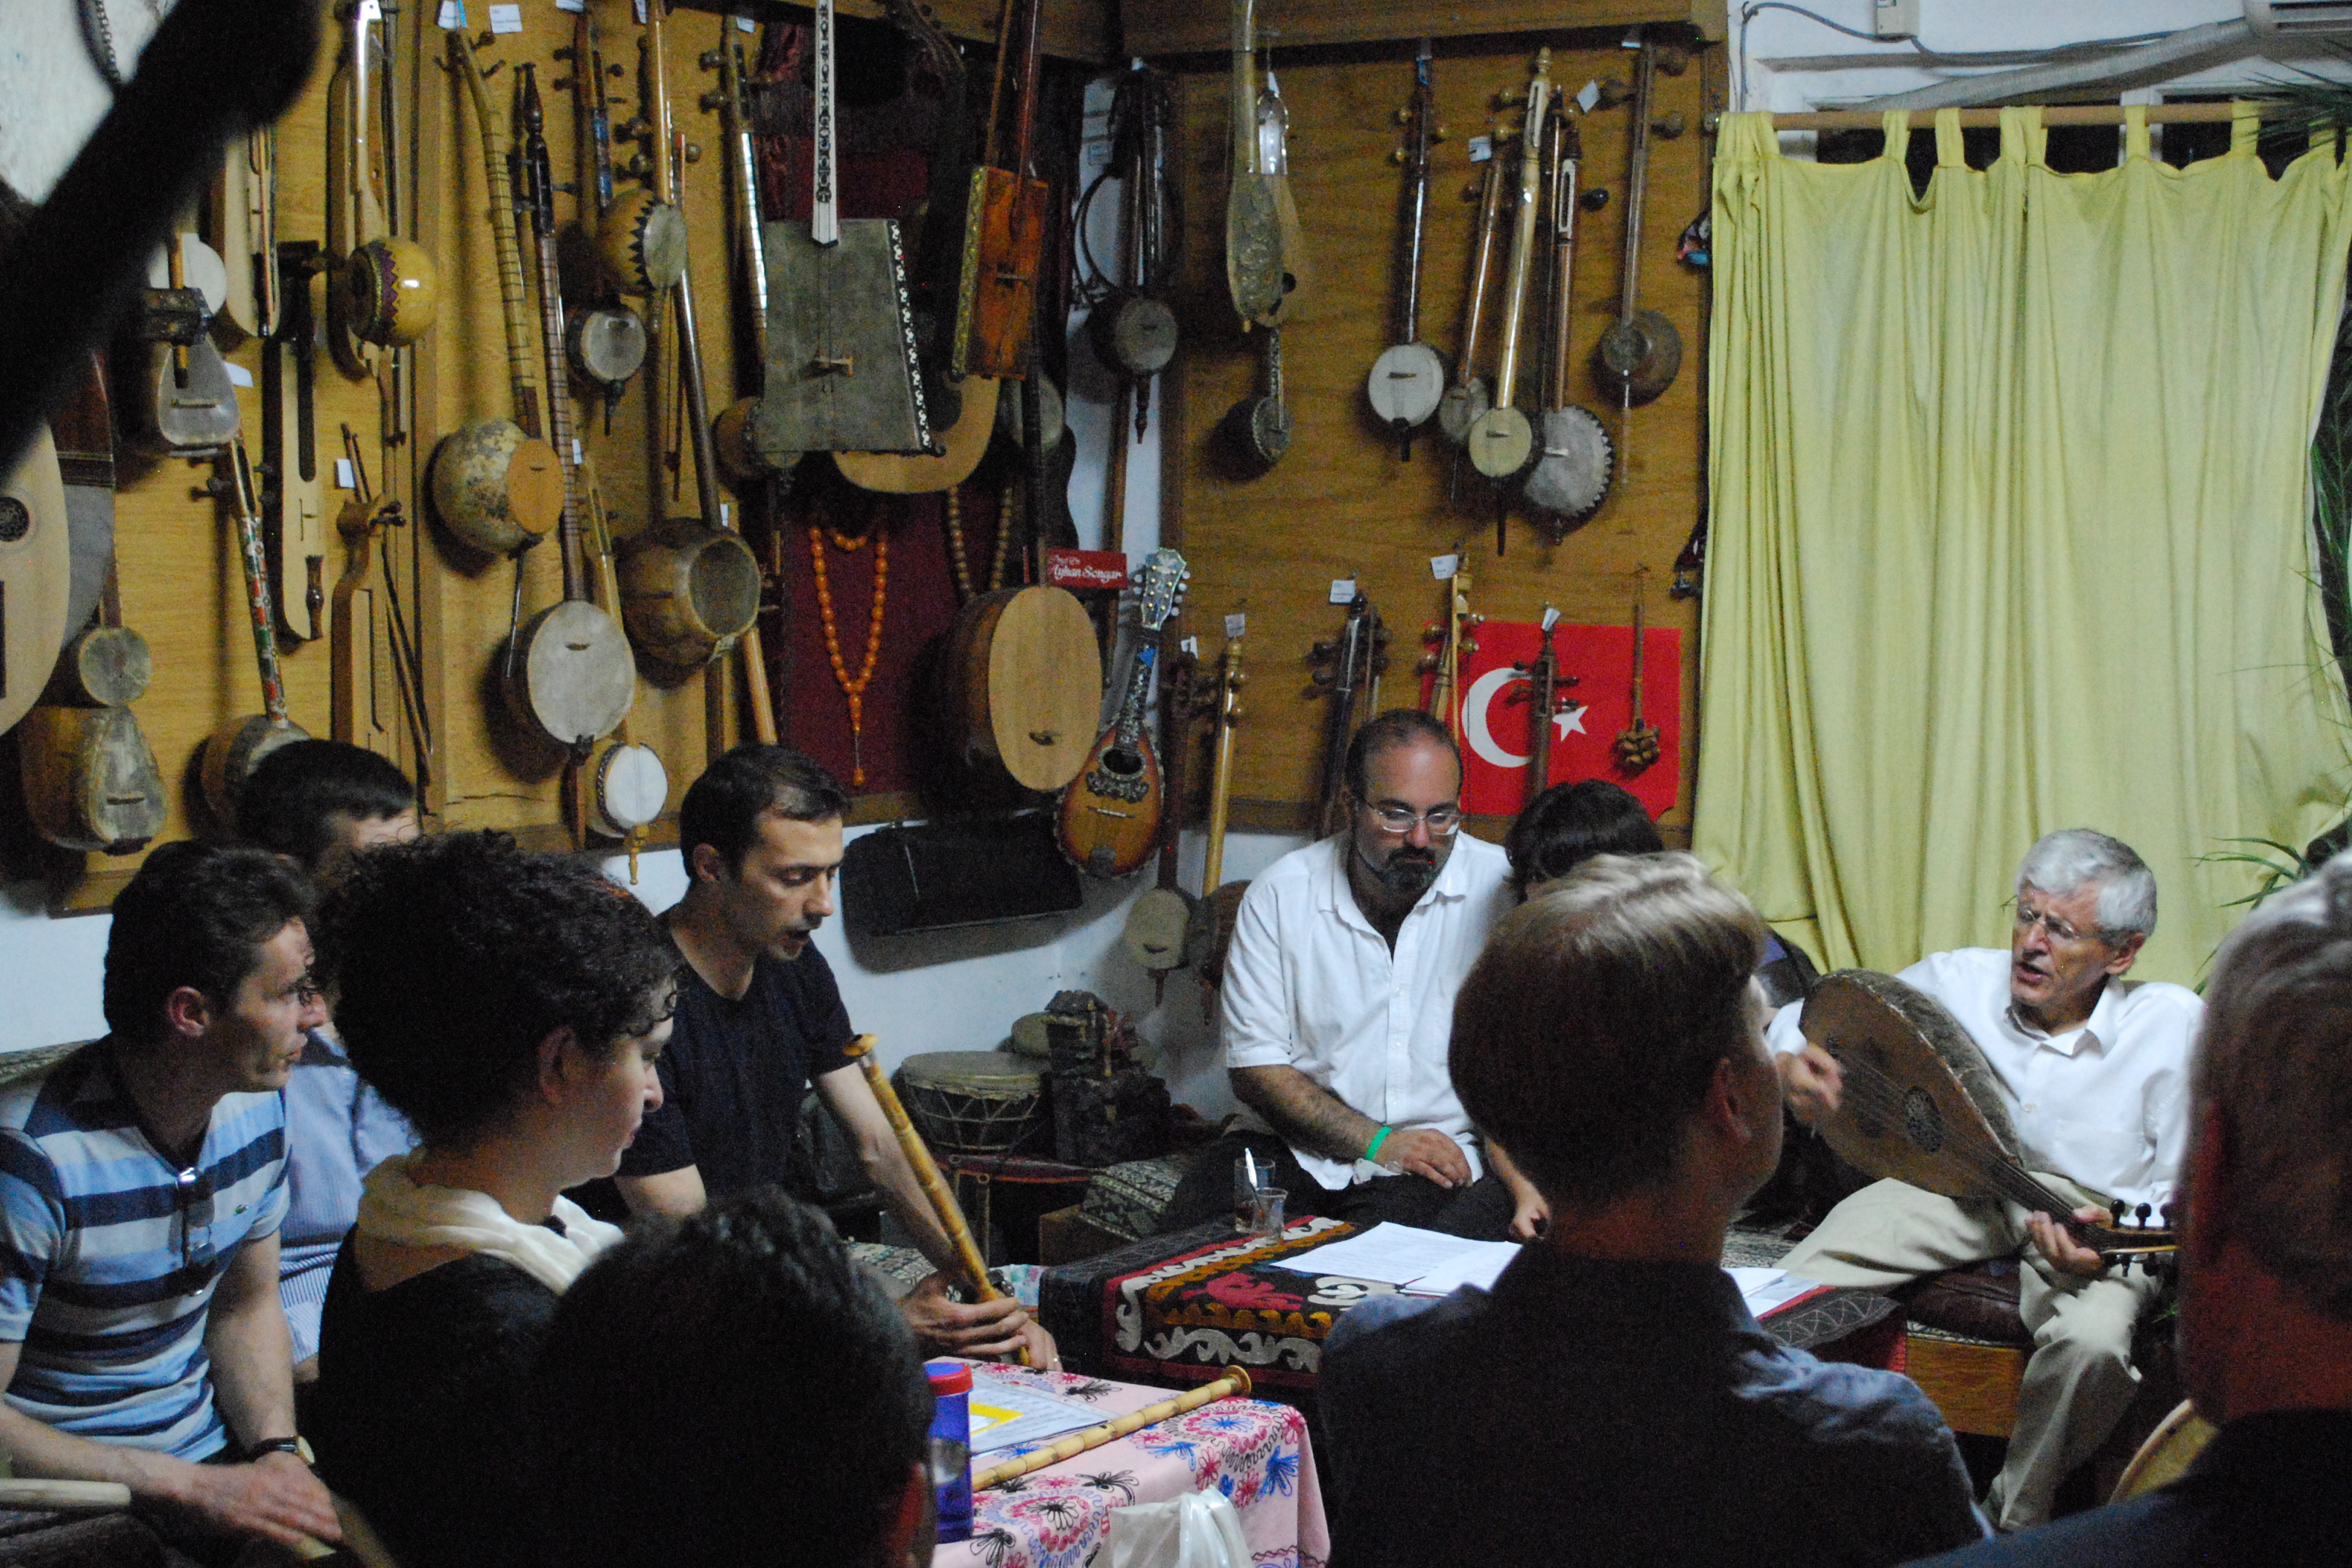 Omid Safi attends as Orüç Güvenç leads a Sufi music workshop in Istanbul, Turkey in 2012.